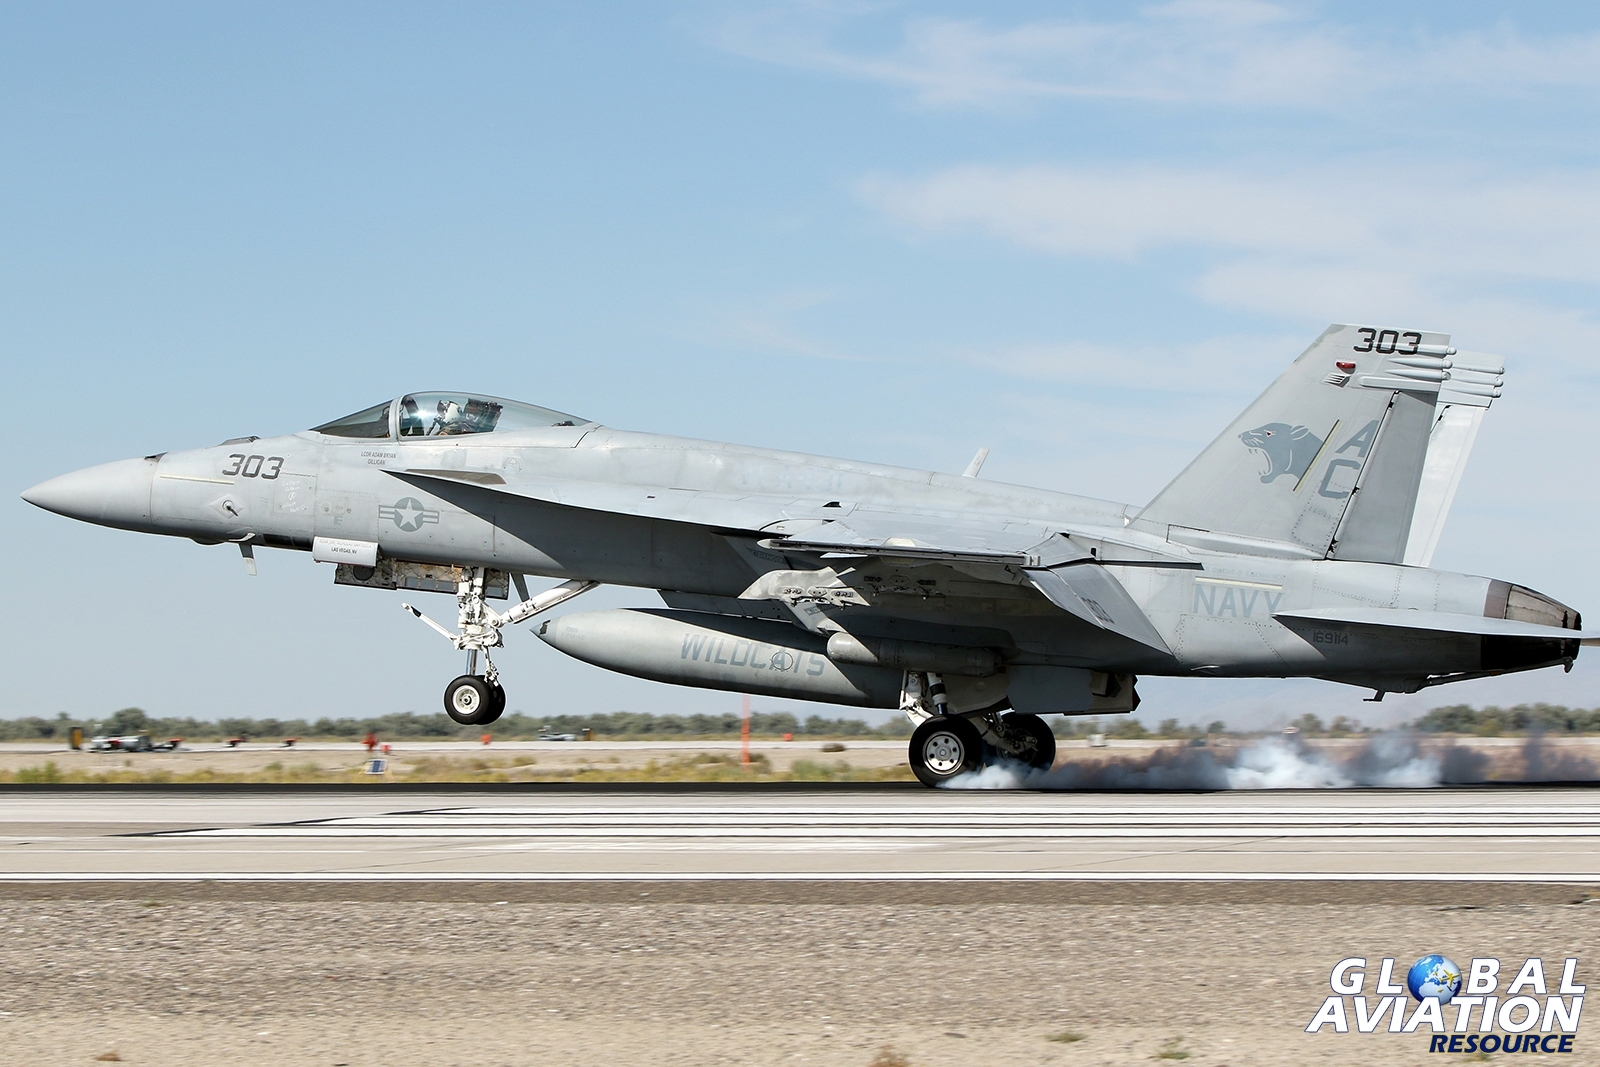 F/A-18E Super Hornet from VFA-131 touches down on the Fallon runway © Paul Dunn - Global Aviation Resource